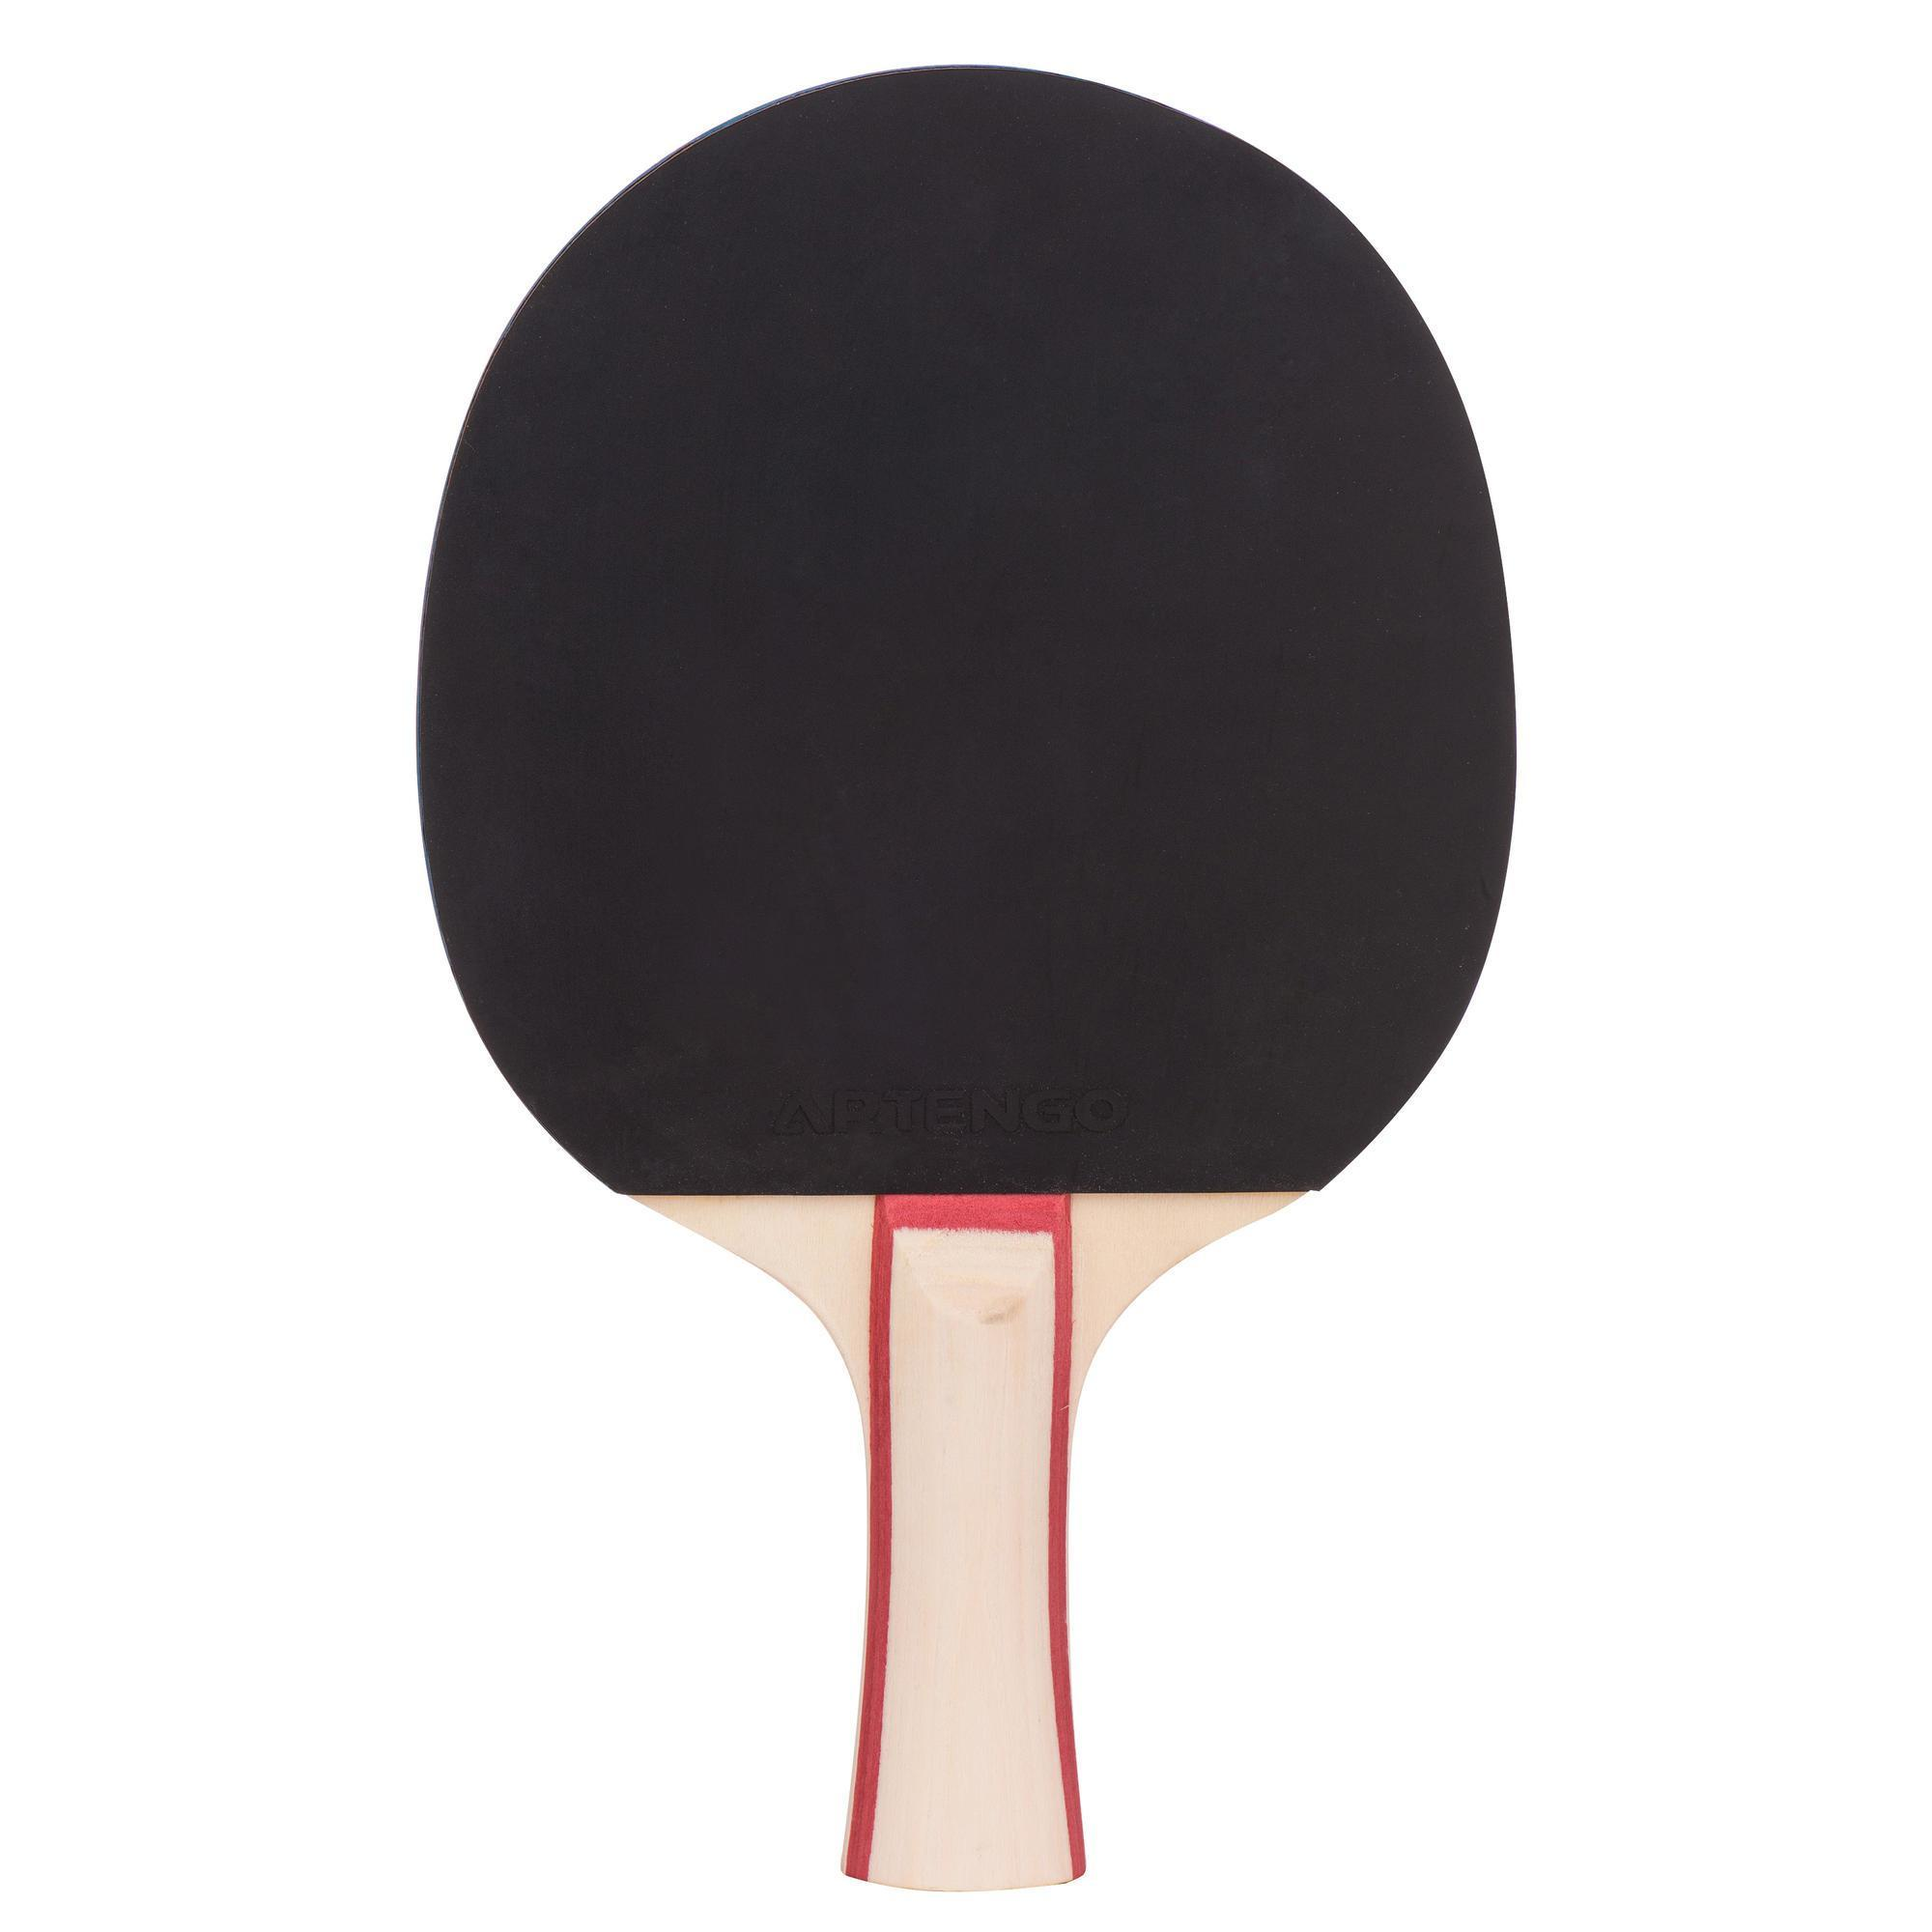 ... FR 130 / PPR 130 Indoor 2* Set of 2 Free Table Tennis Bats and ...  sc 1 th 225 : table tennis sets - pezcame.com